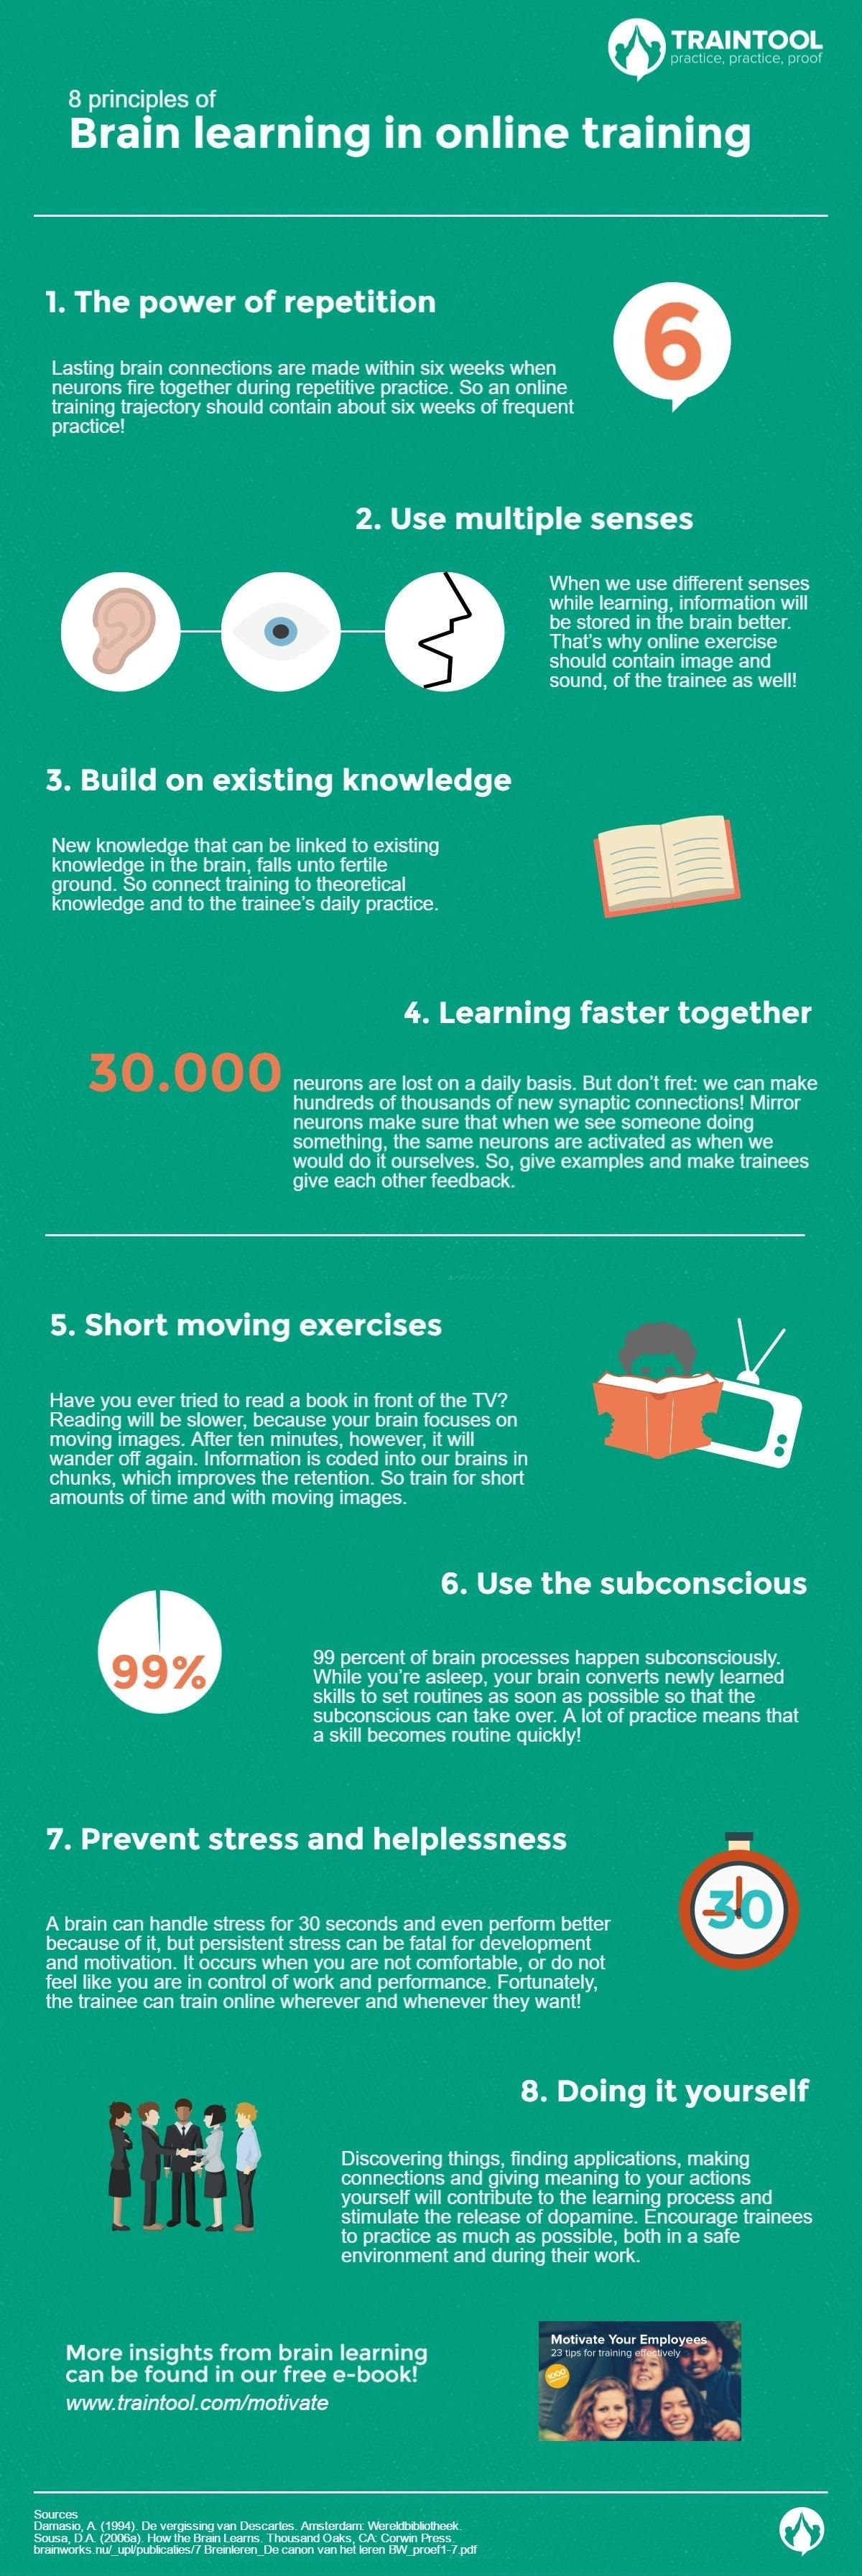 8 Principles of Brain Learning in Online Training Infographic